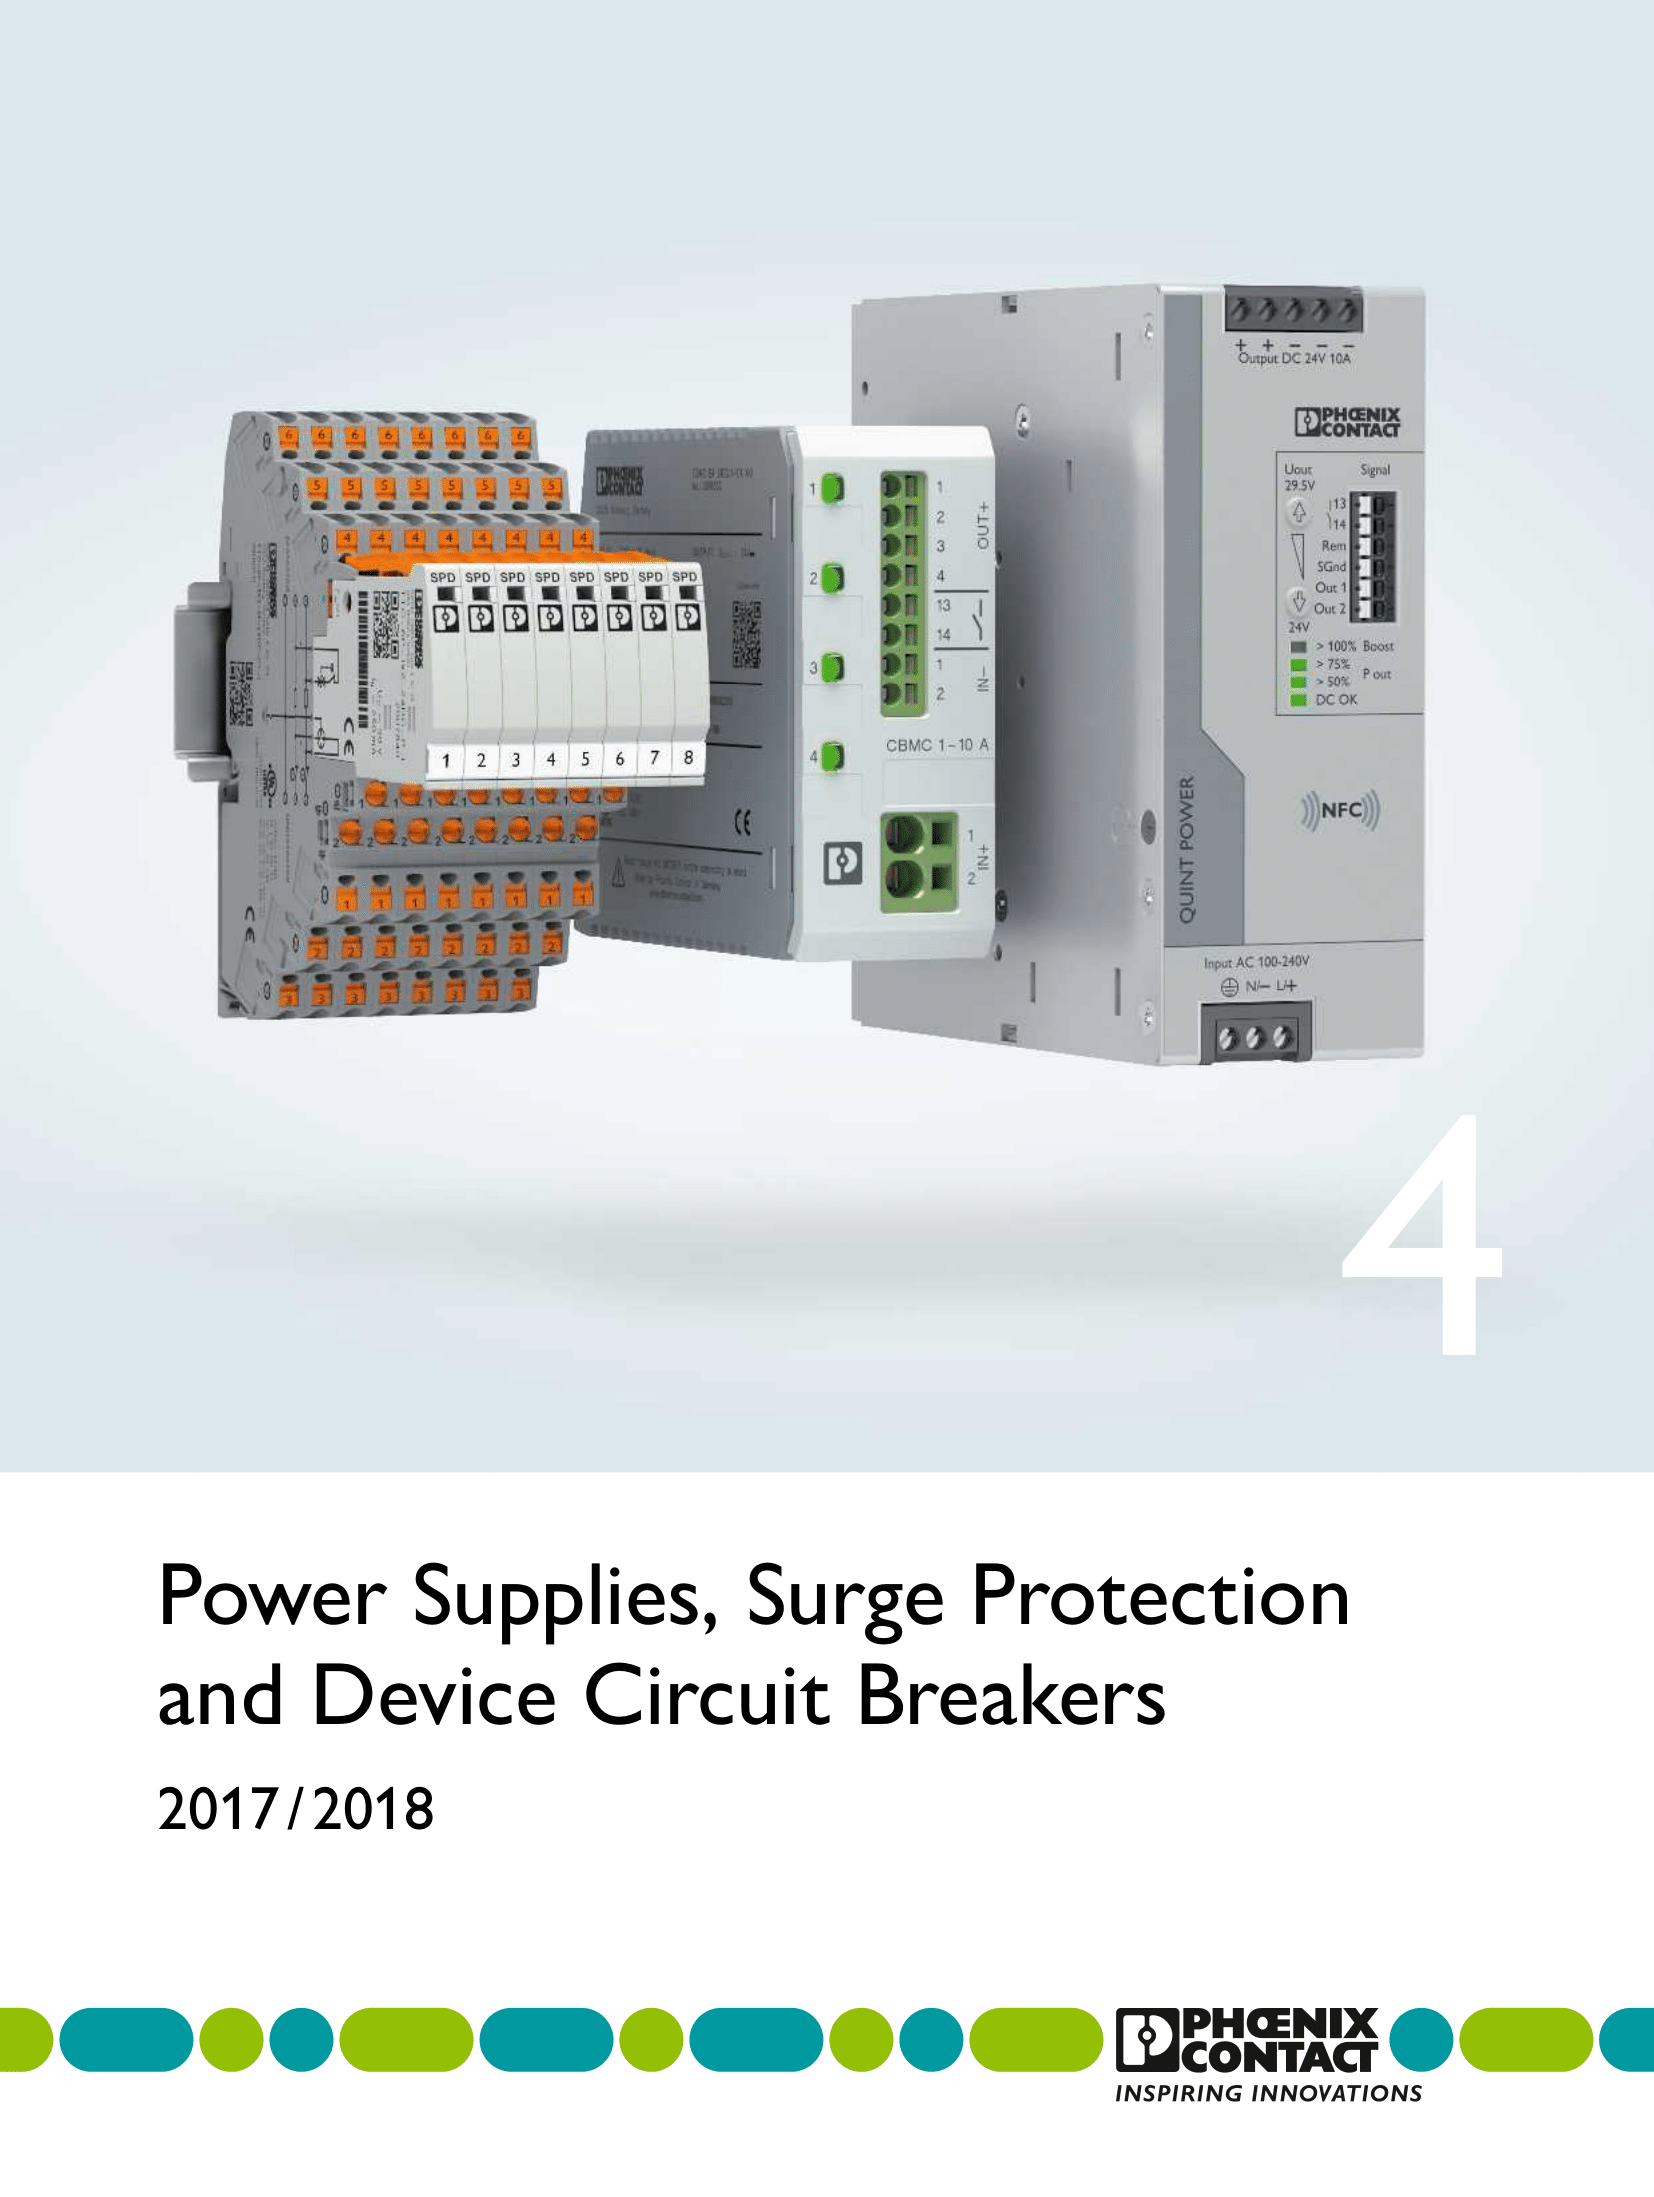 Power Supplies, Surge Protection and Device Circuit Breakers